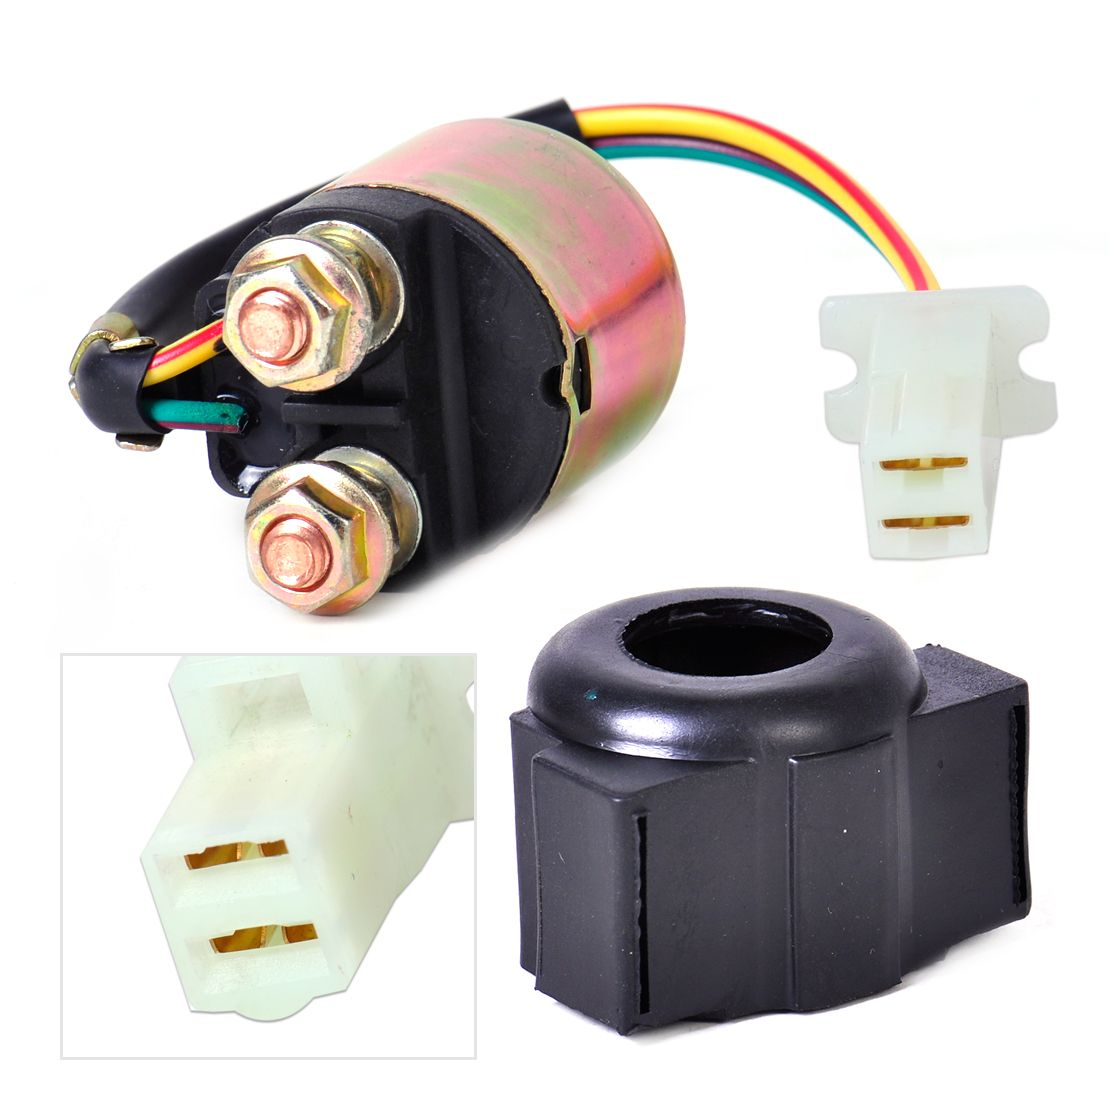 DWCX Motorbike 2-Wire Plug Connection Starter Relay Solenoid for Yamaha XV750 Virago SR185 YFM350 Honda ATV 300 Fourtrax Suzuki